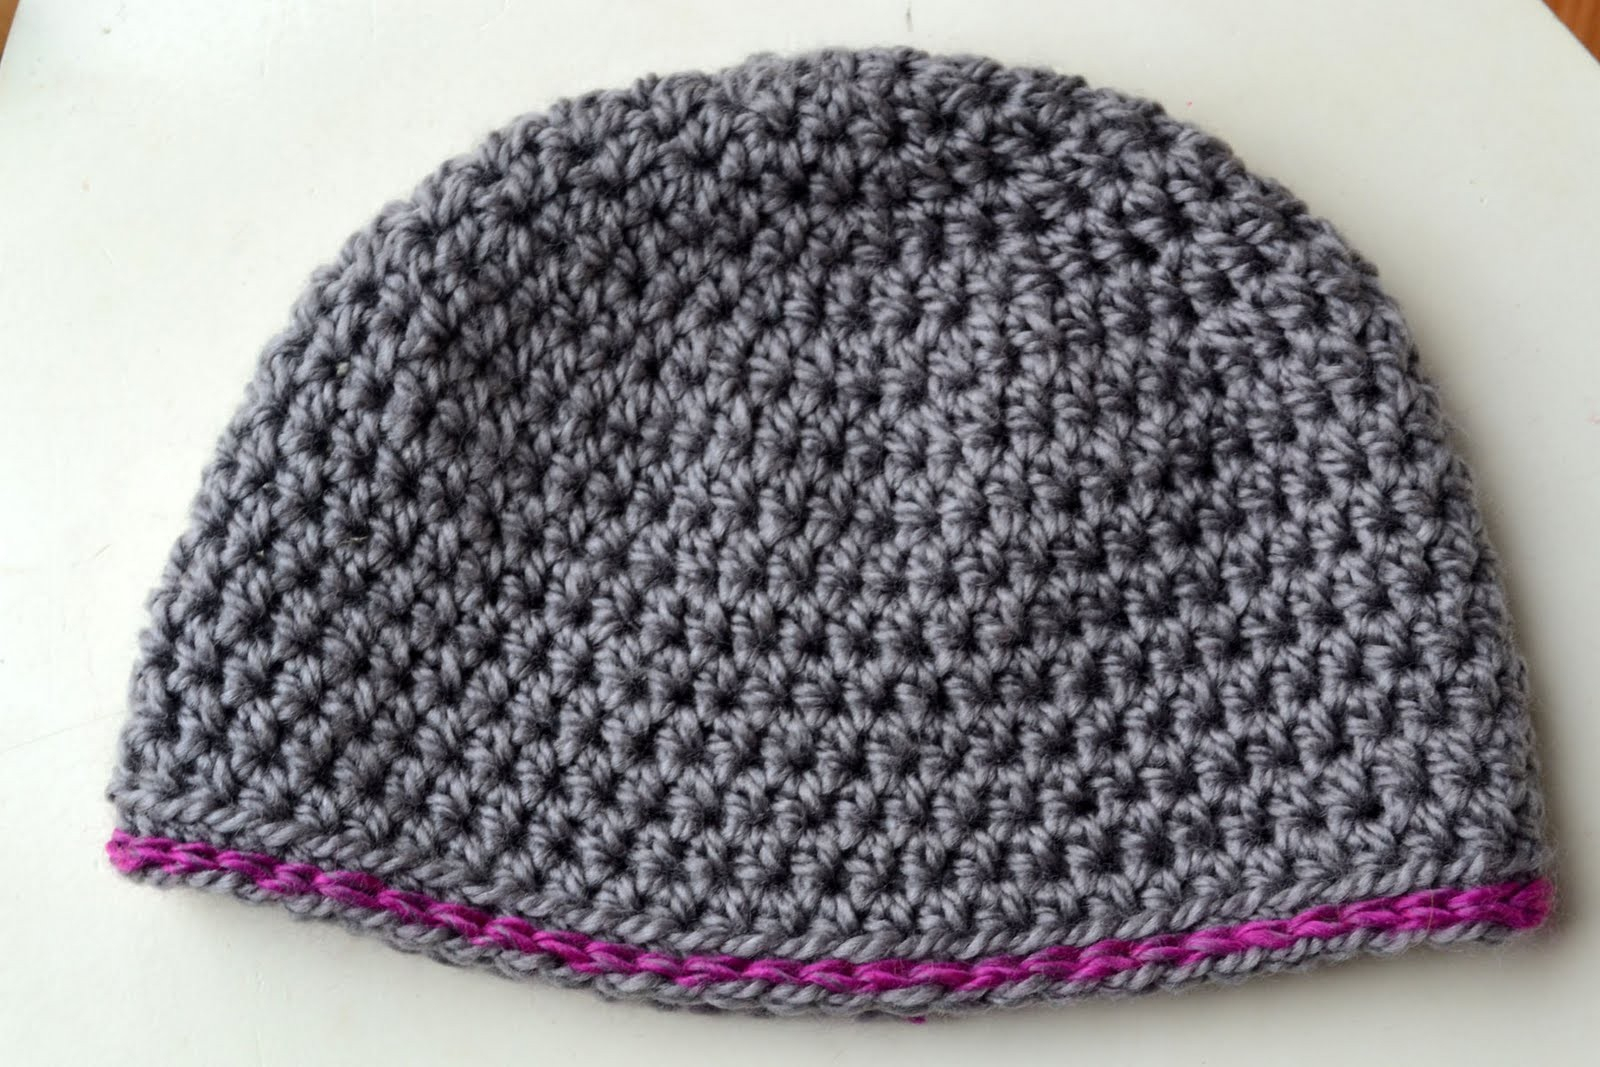 What You Should Know Before Proceeding Crochet Chunky Yarn Patterns Chunky Yarn Crochet Best Of Crochet In Color Chunky Beanie Pattern